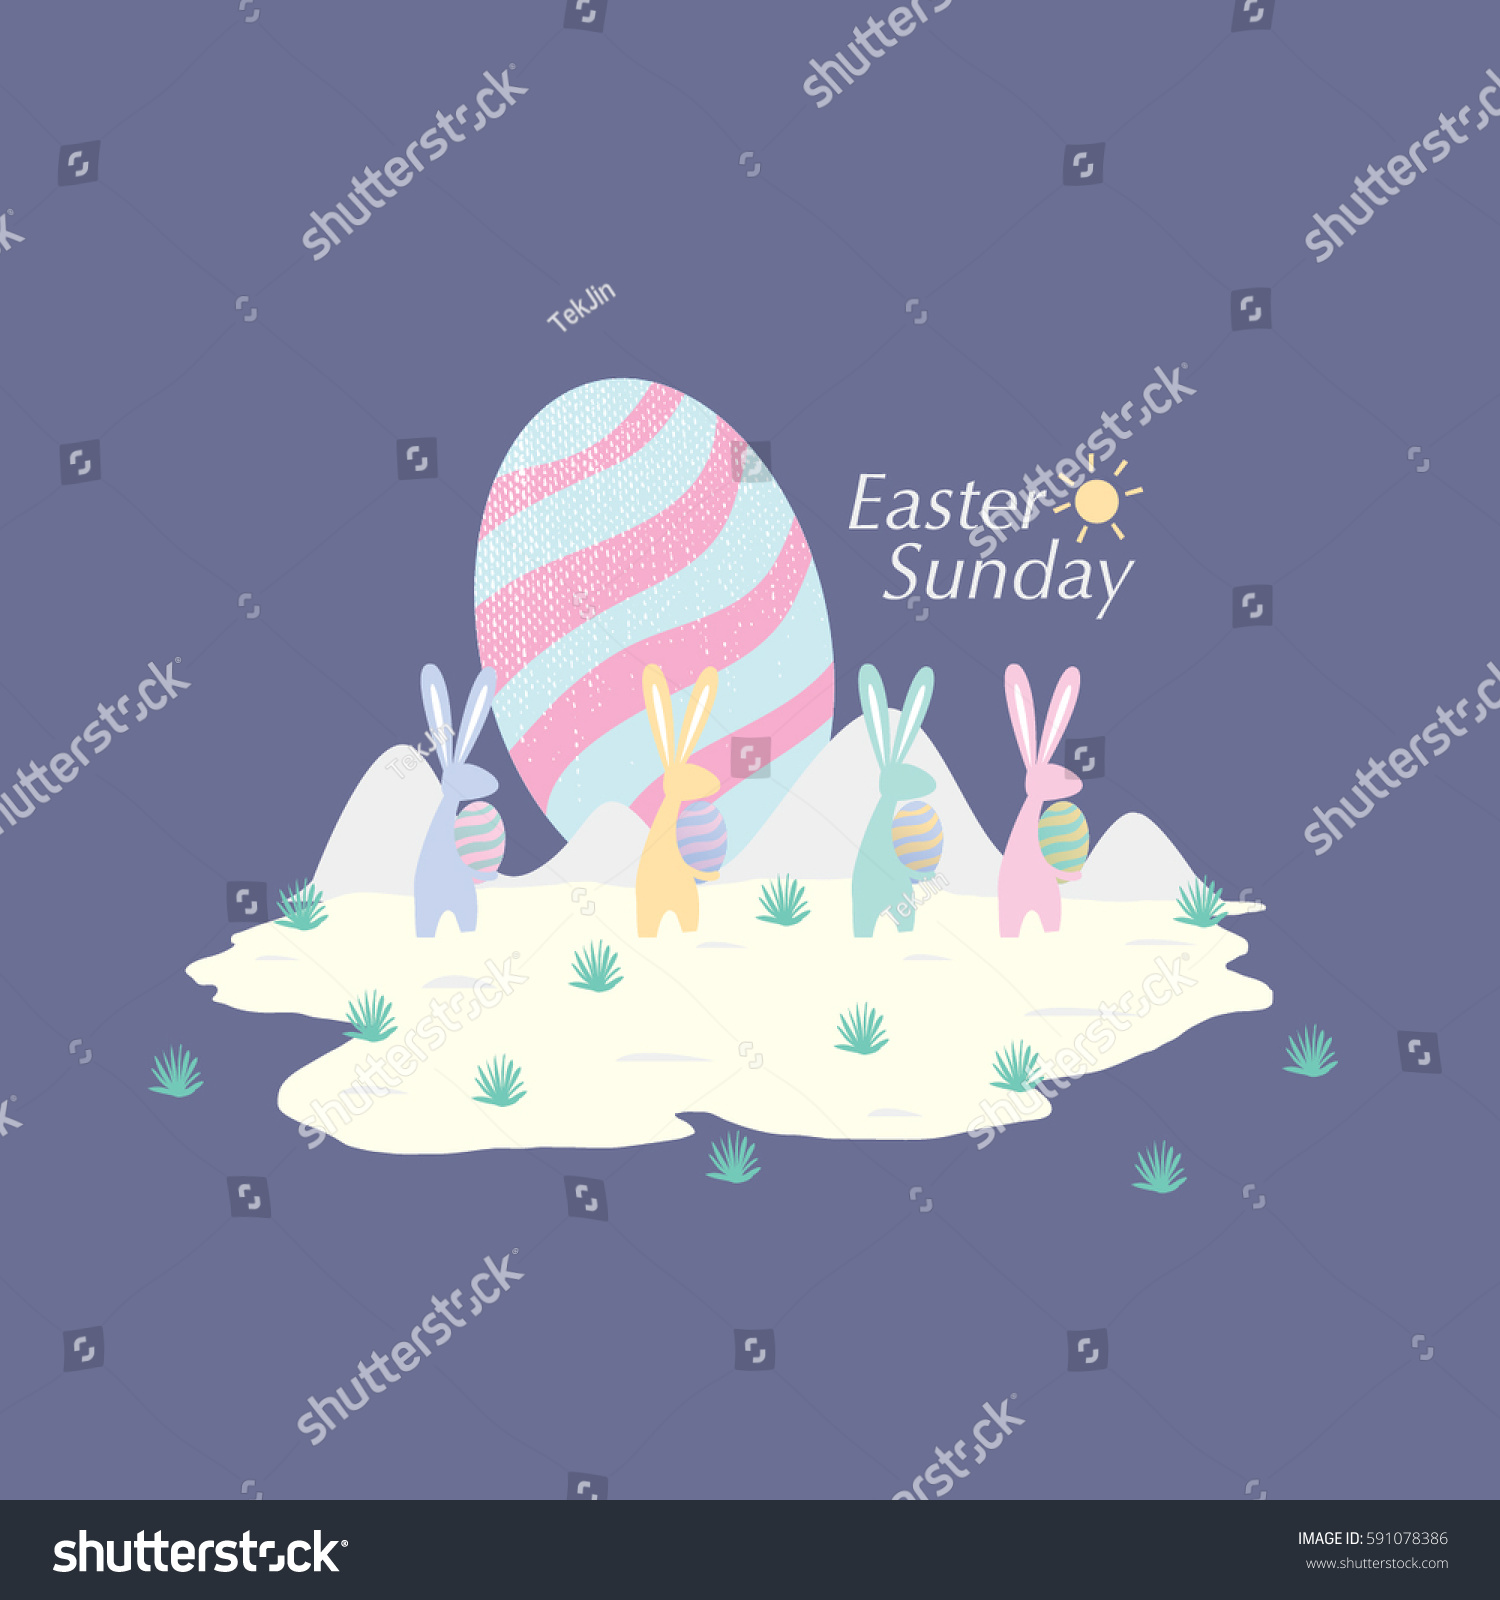 Easter Sunday Greetings Easter Egg Hunt Stock Vector 591078386